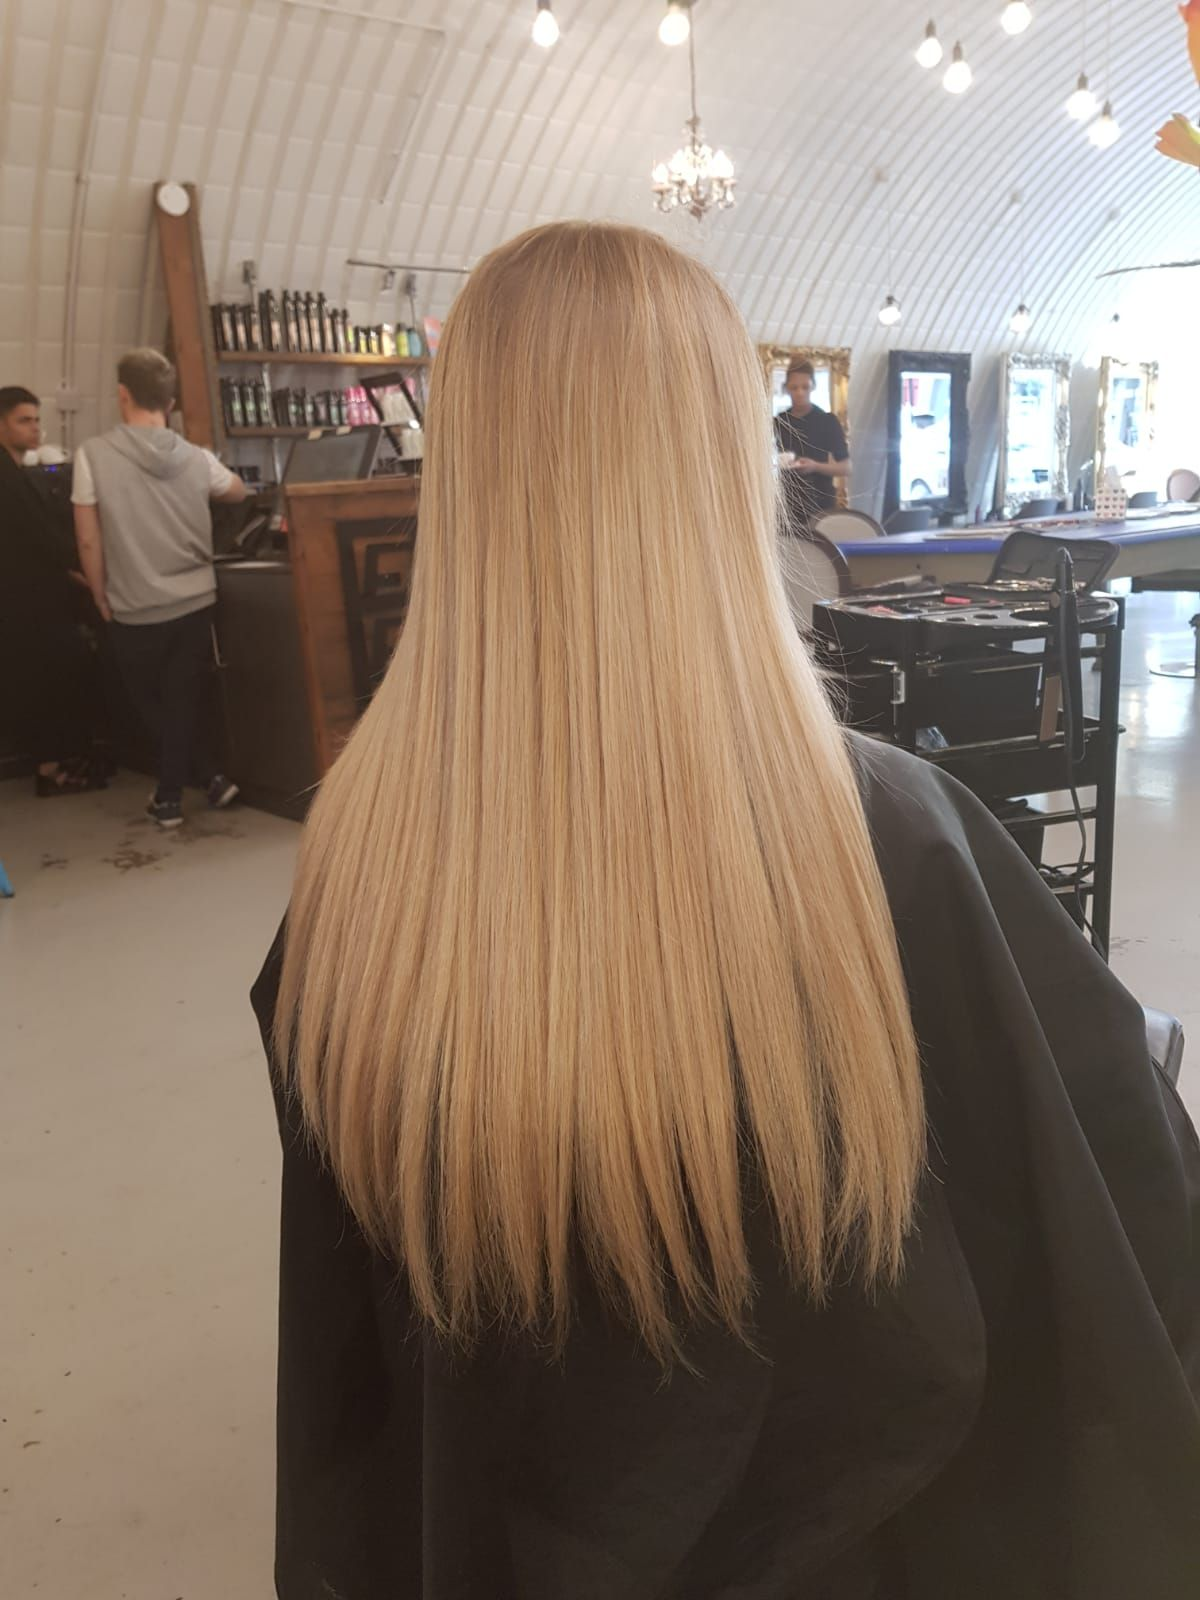 Pin By Live True London On Hair Extensions Pinterest Hair